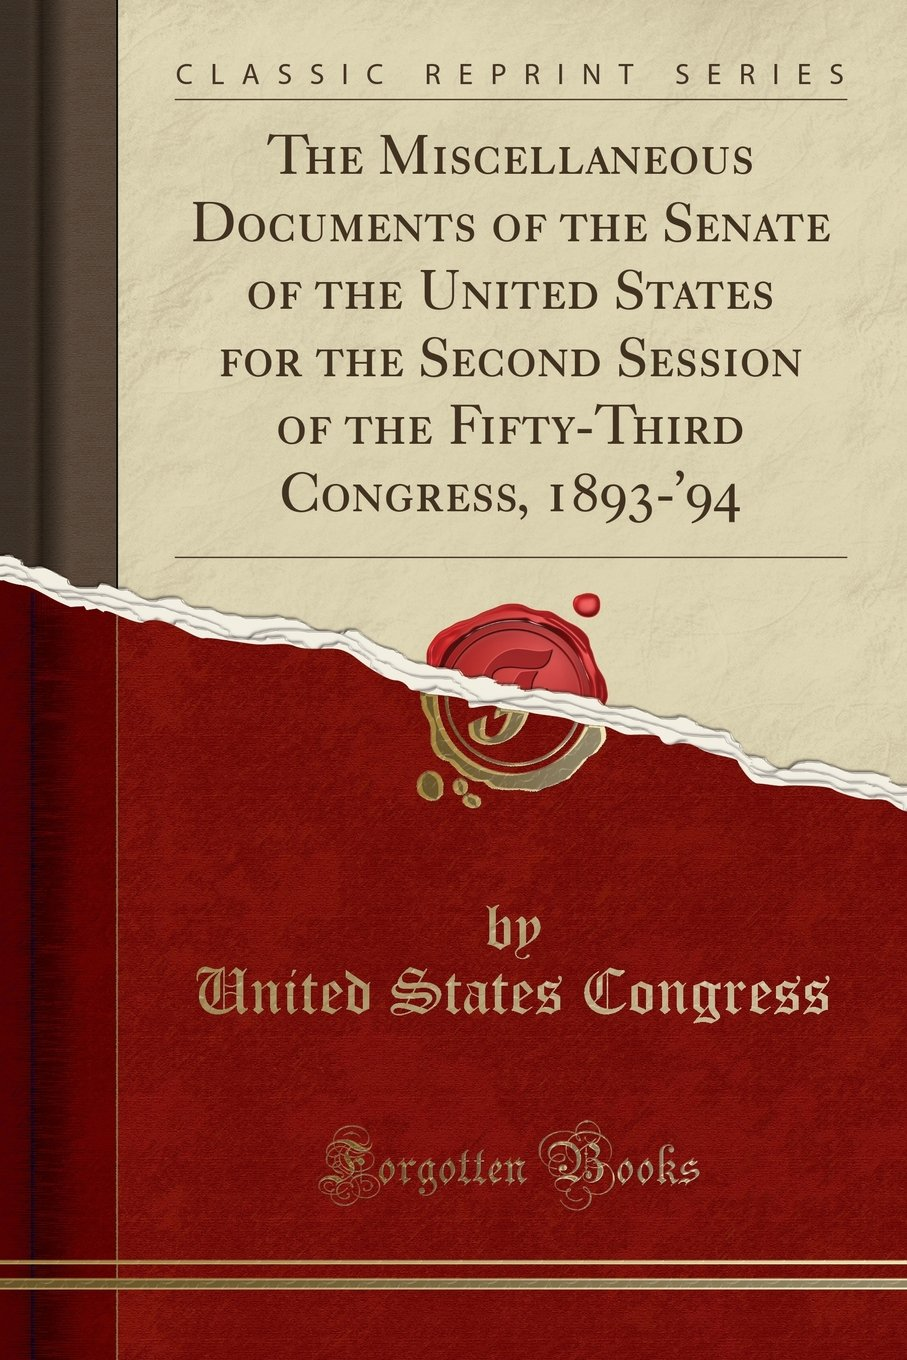 Download The Miscellaneous Documents of the Senate of the United States for the Second Session of the Fifty-Third Congress, 1893-'94 (Classic Reprint) pdf epub